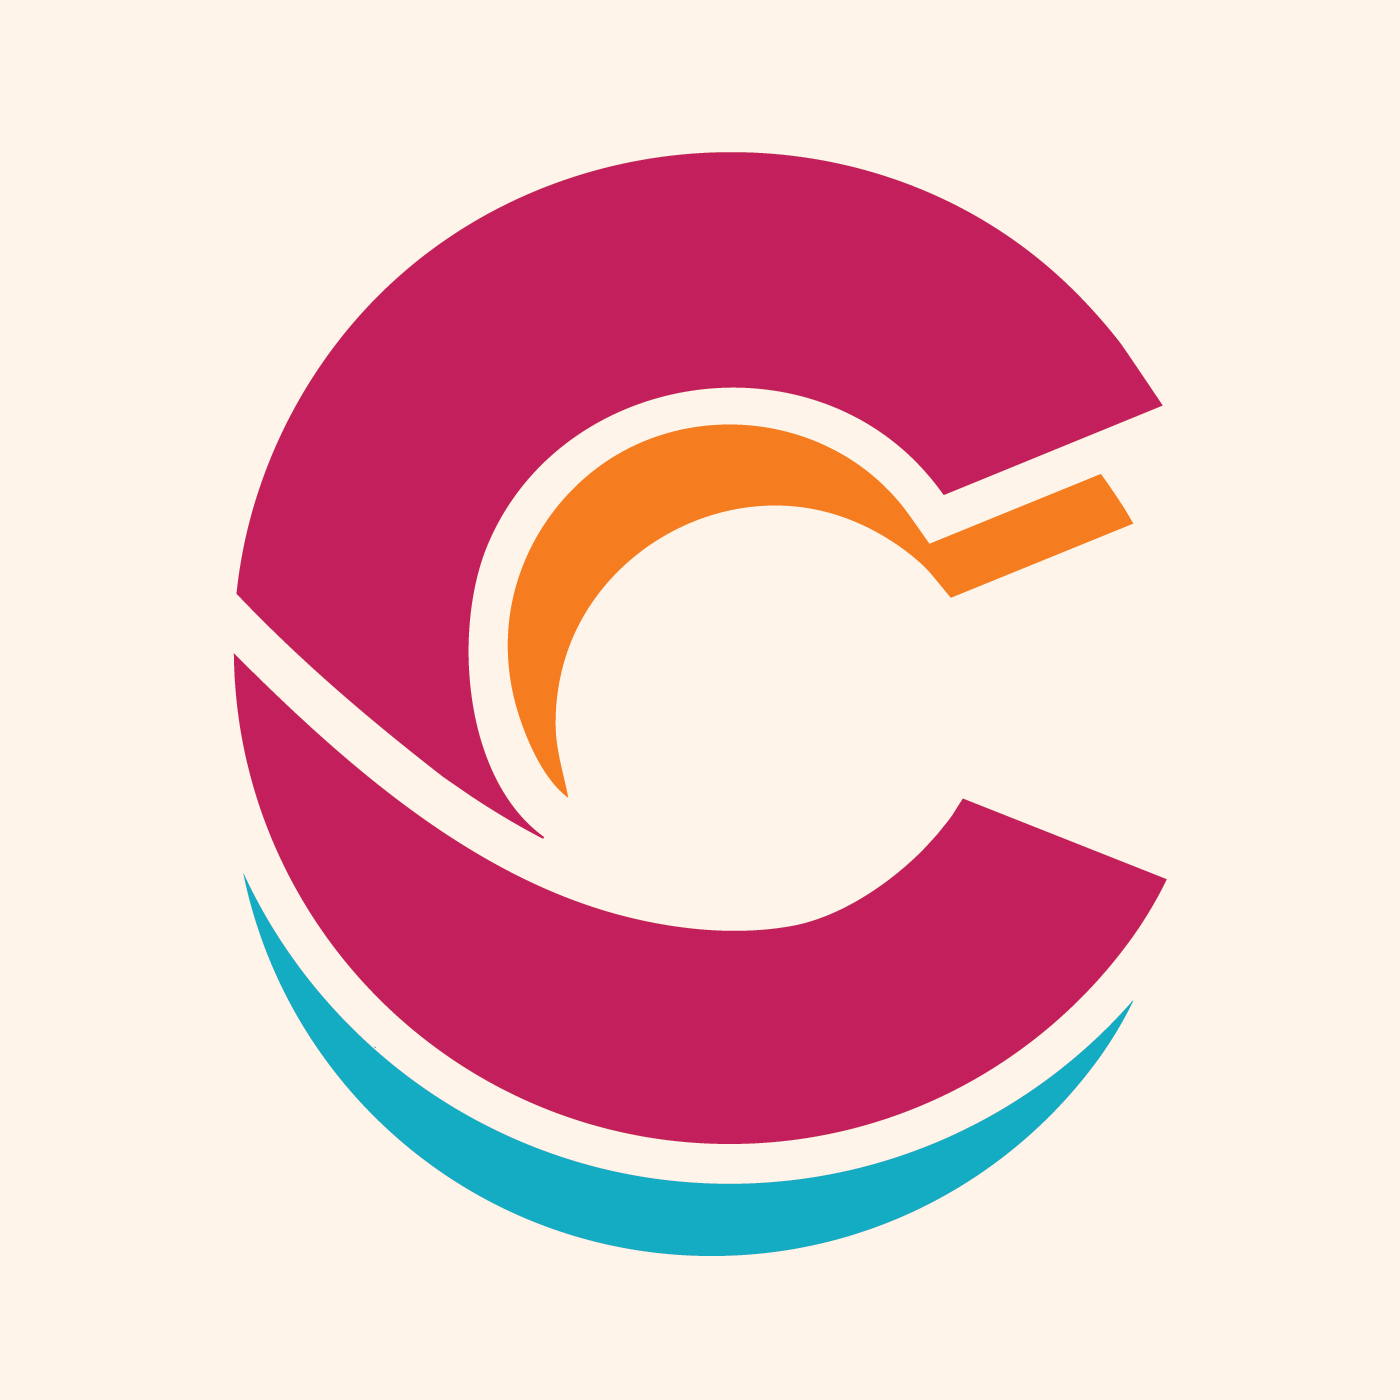 Letter C Vintage Style - Download Free Vector Art, Stock Graphics ...